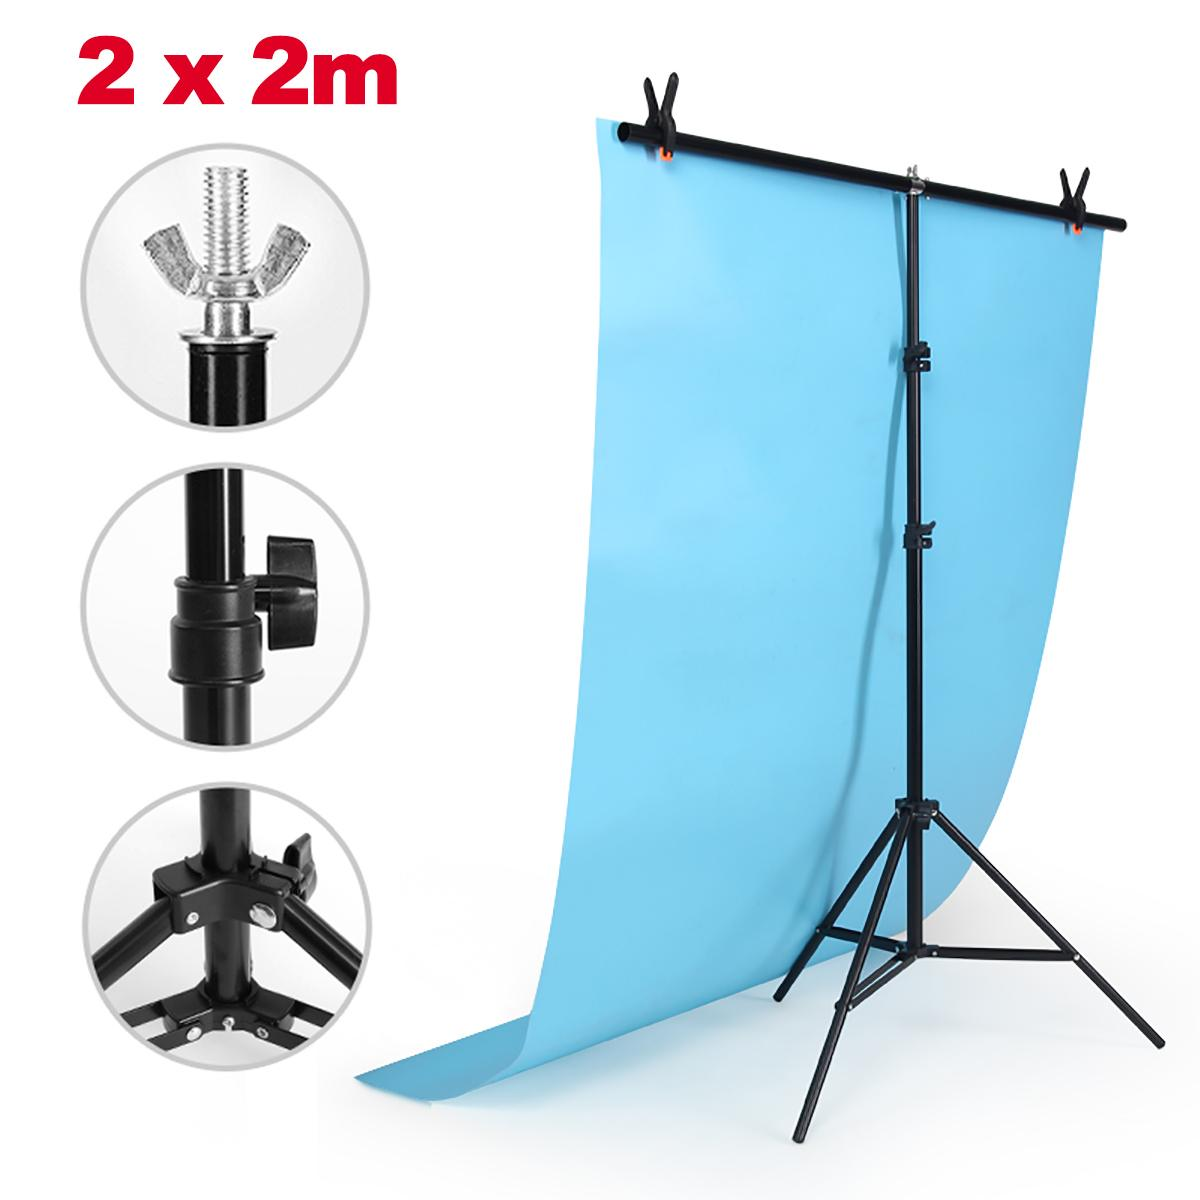 2*2m Adjustable Background Support Stand Photo Backdrop Crossbar Kit Photography2*2m Adjustable Background Support Stand Photo Backdrop Crossbar Kit Photography